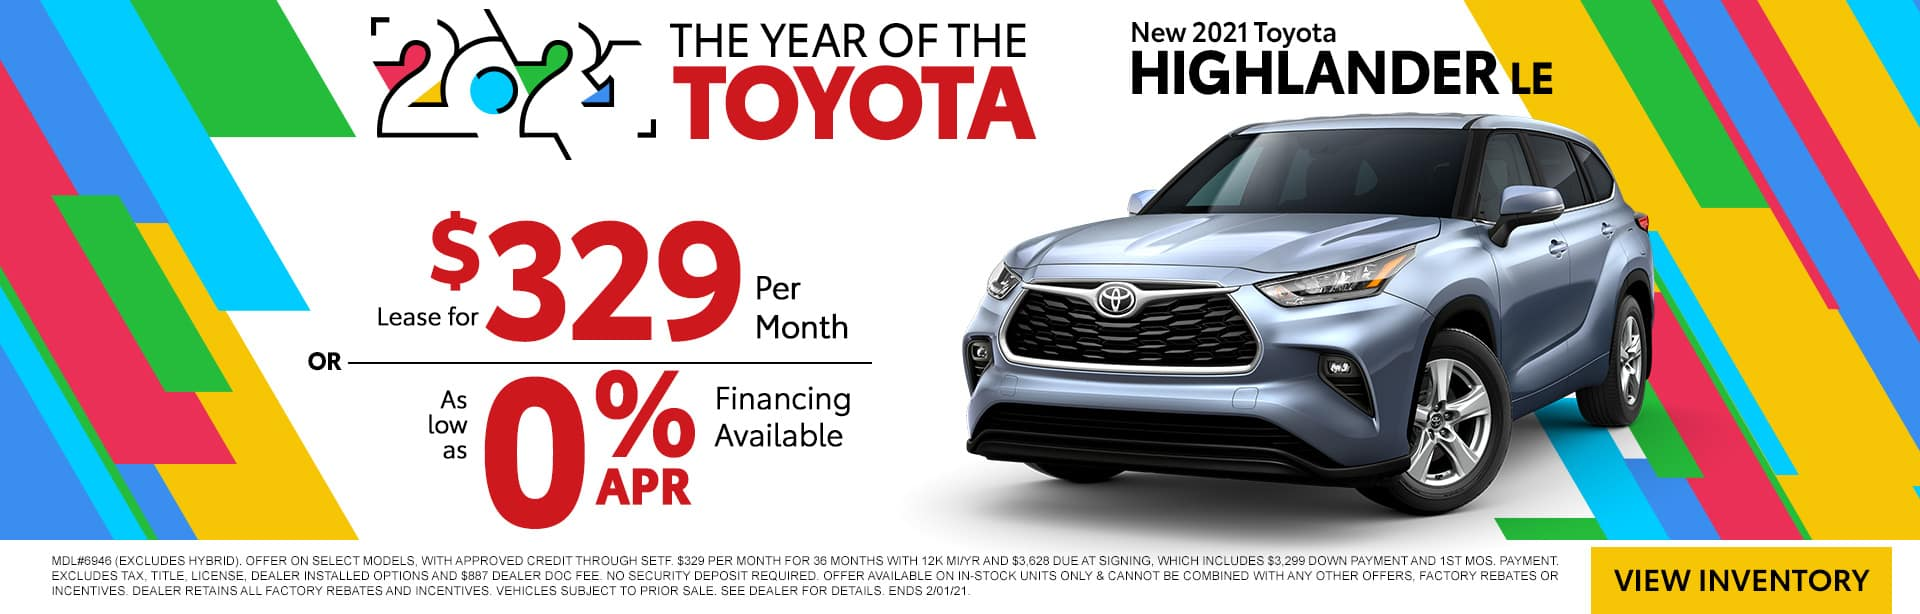 NEW 2021 TOYOTA HIGHLANDER LE | THE YEAR OF THE TOYOTA